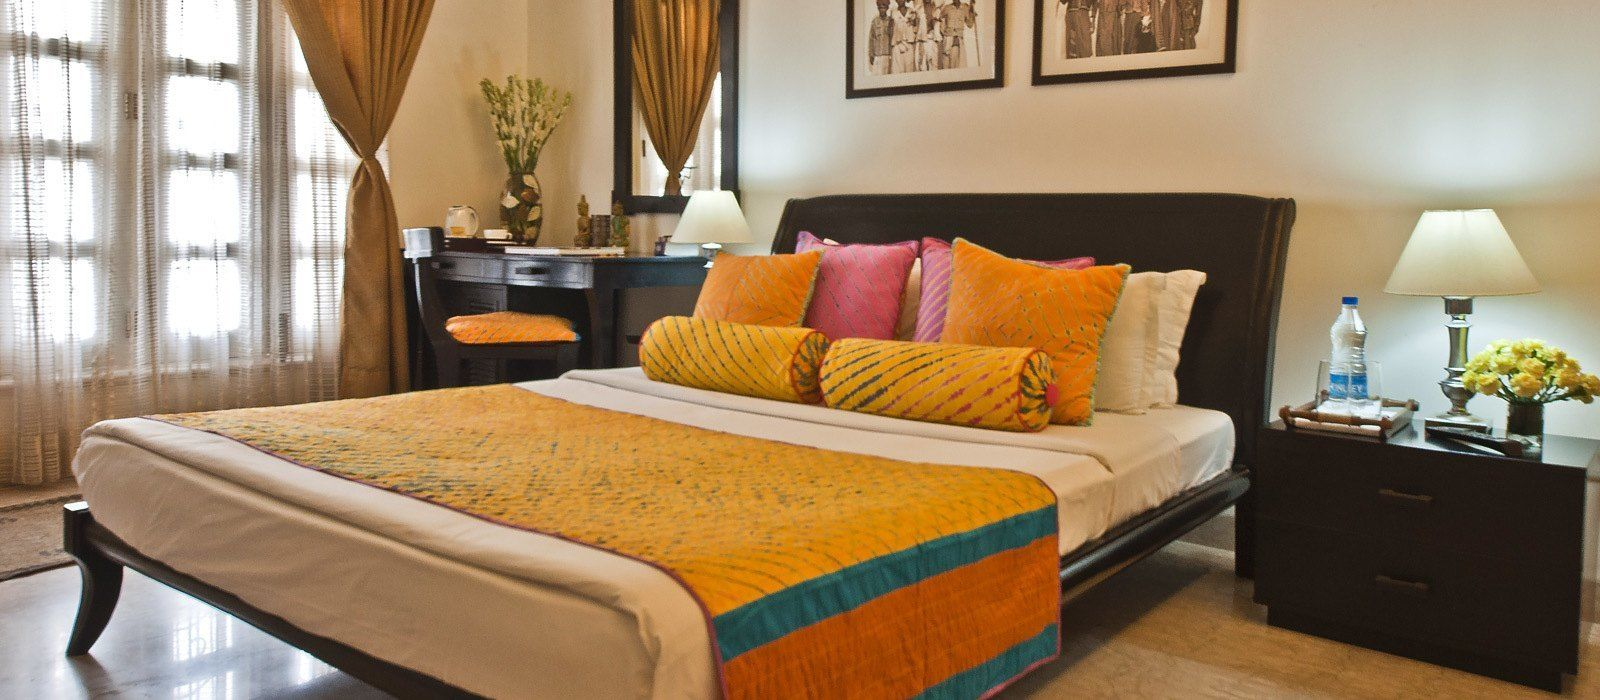 Hotel Colonels Retreat North India